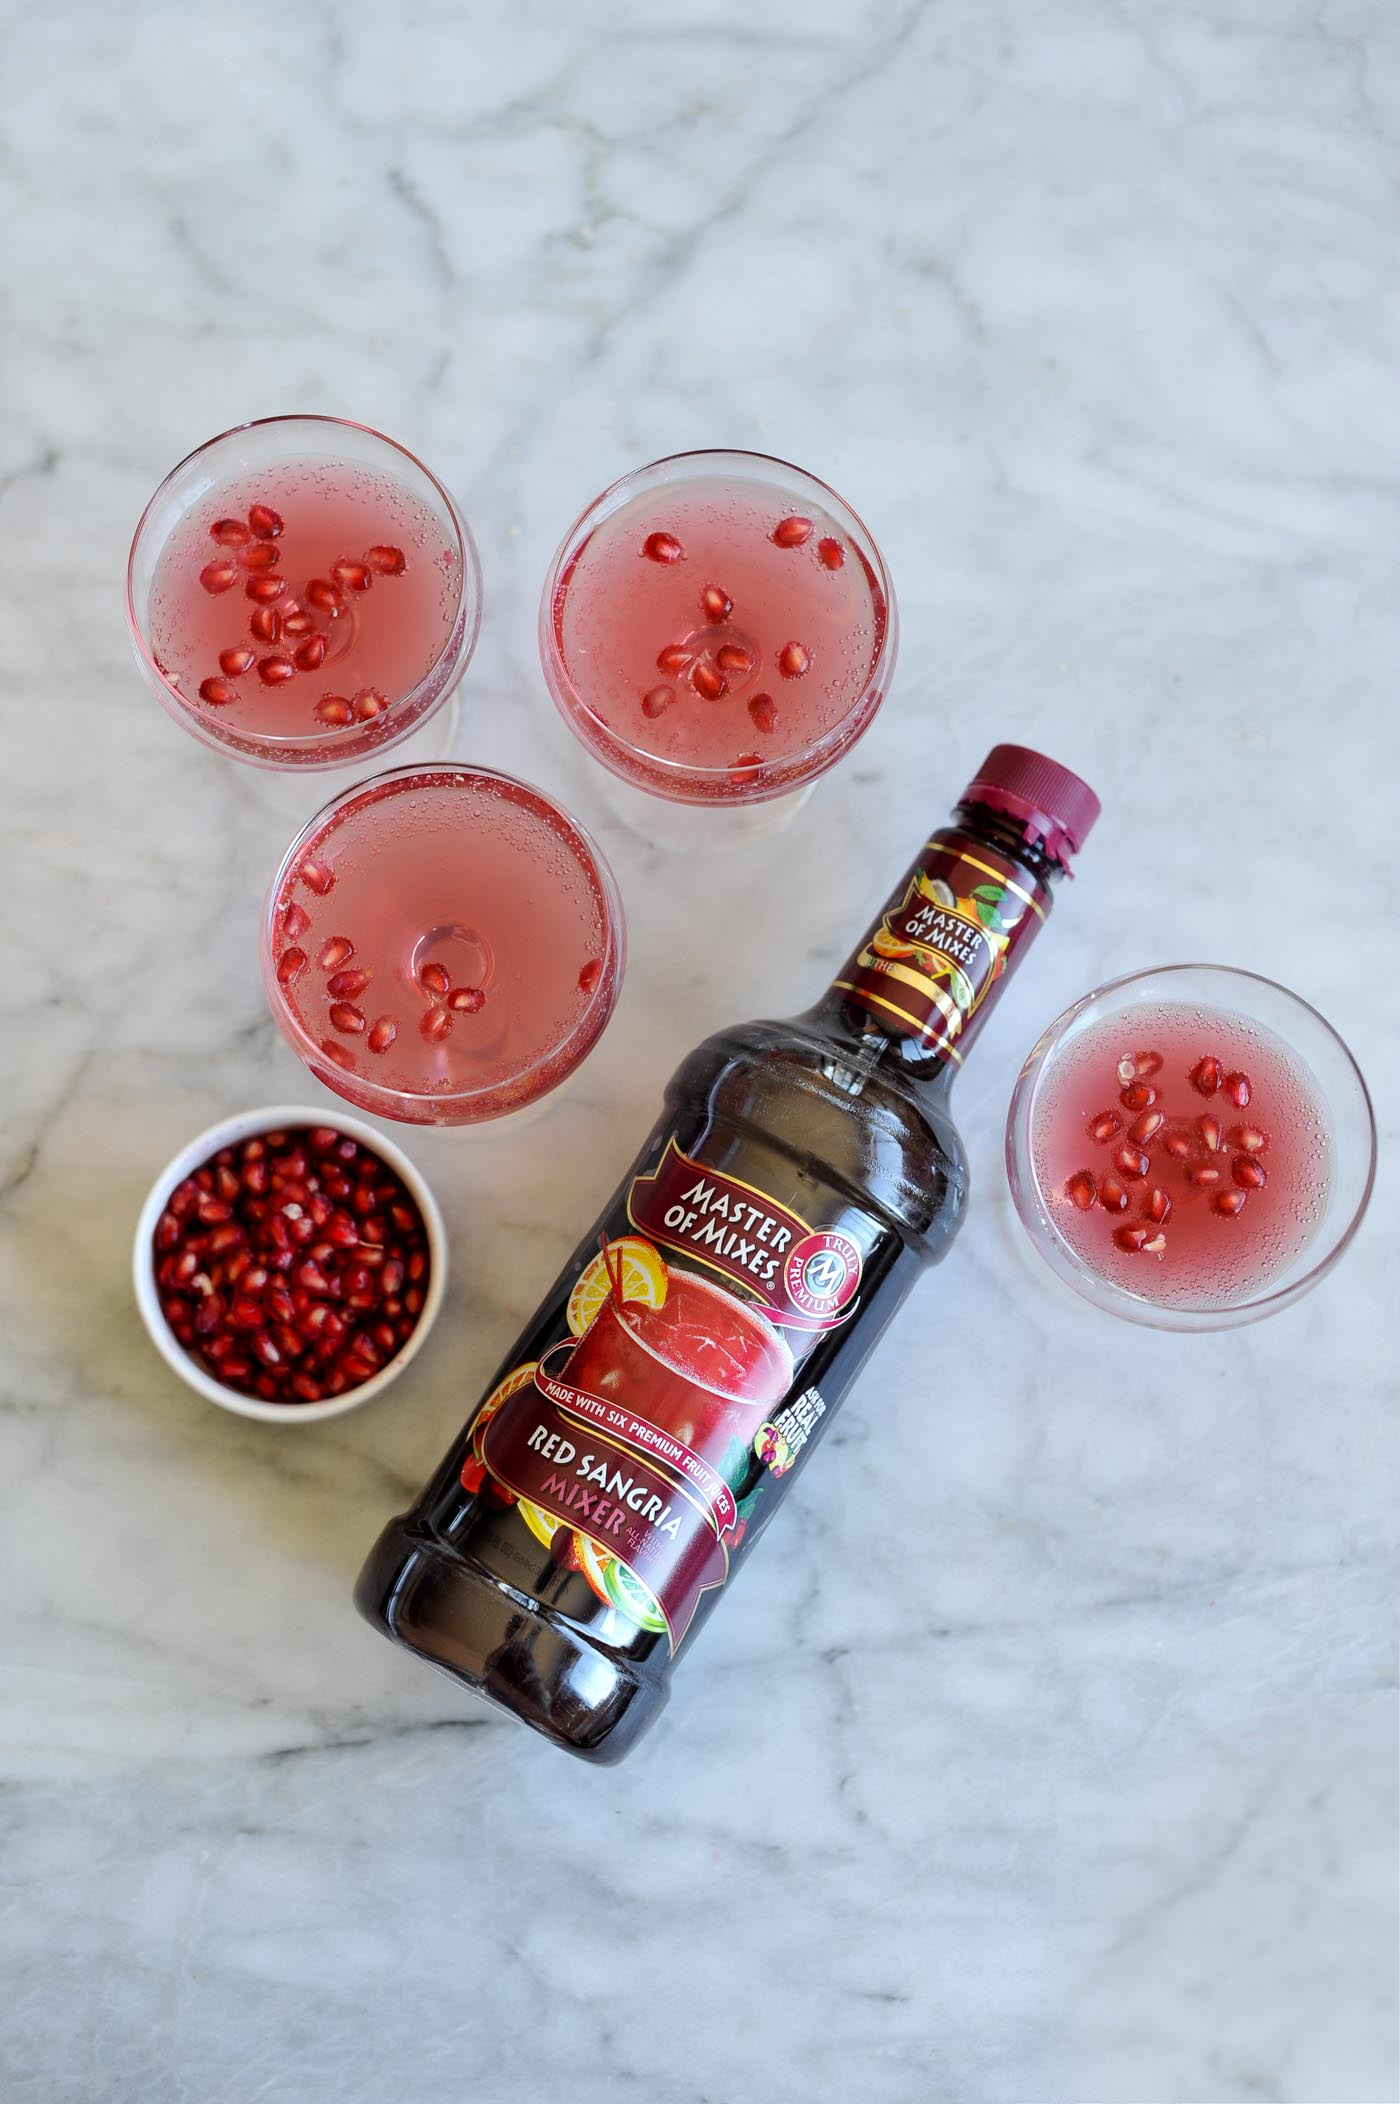 pomegranate cocktail recipe, holiday entertaining ideas - My Style Vita